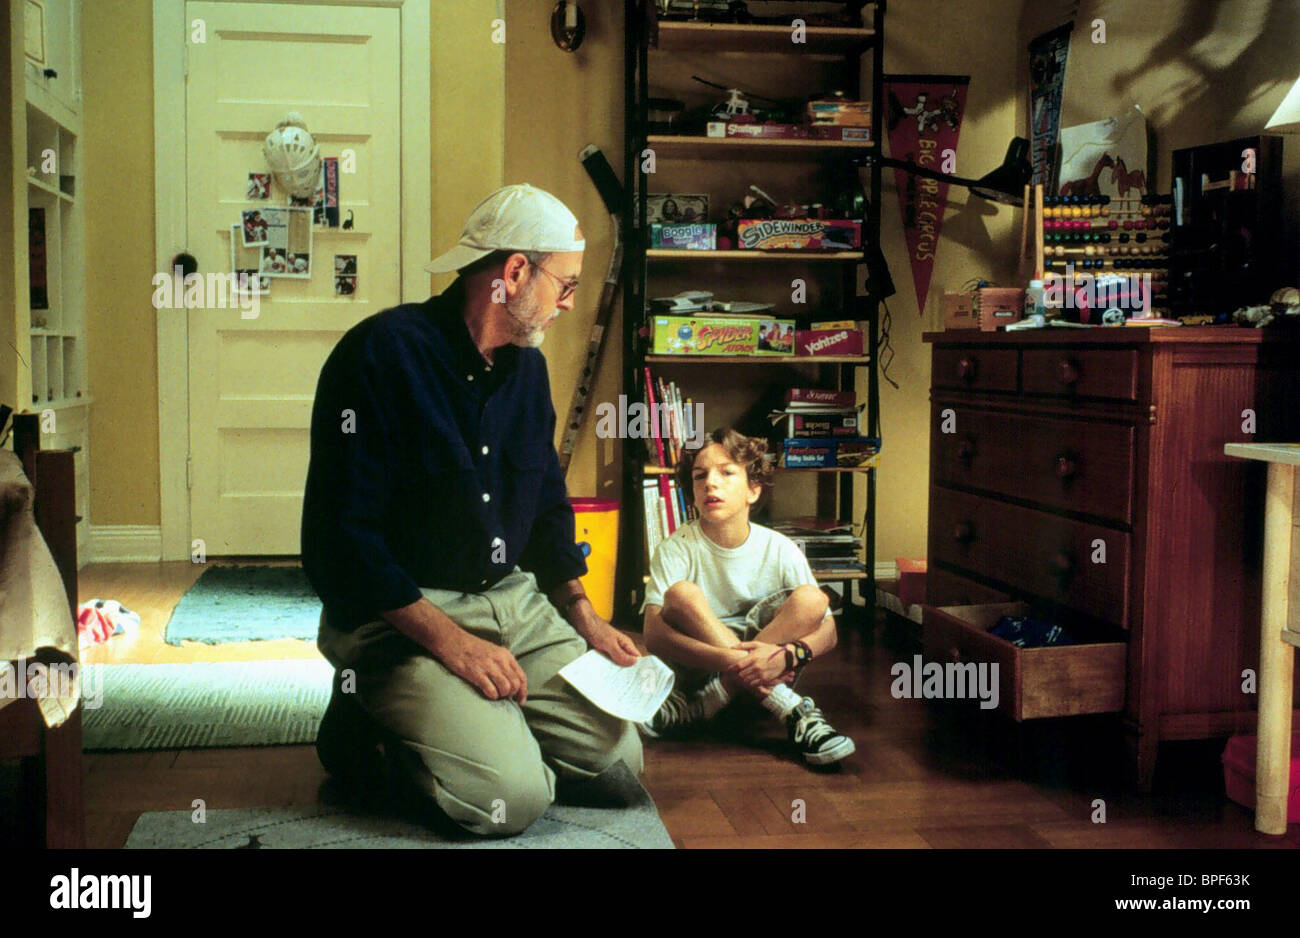 Page 2 Indian In The Cupboard High Resolution Stock Photography And Images Alamy